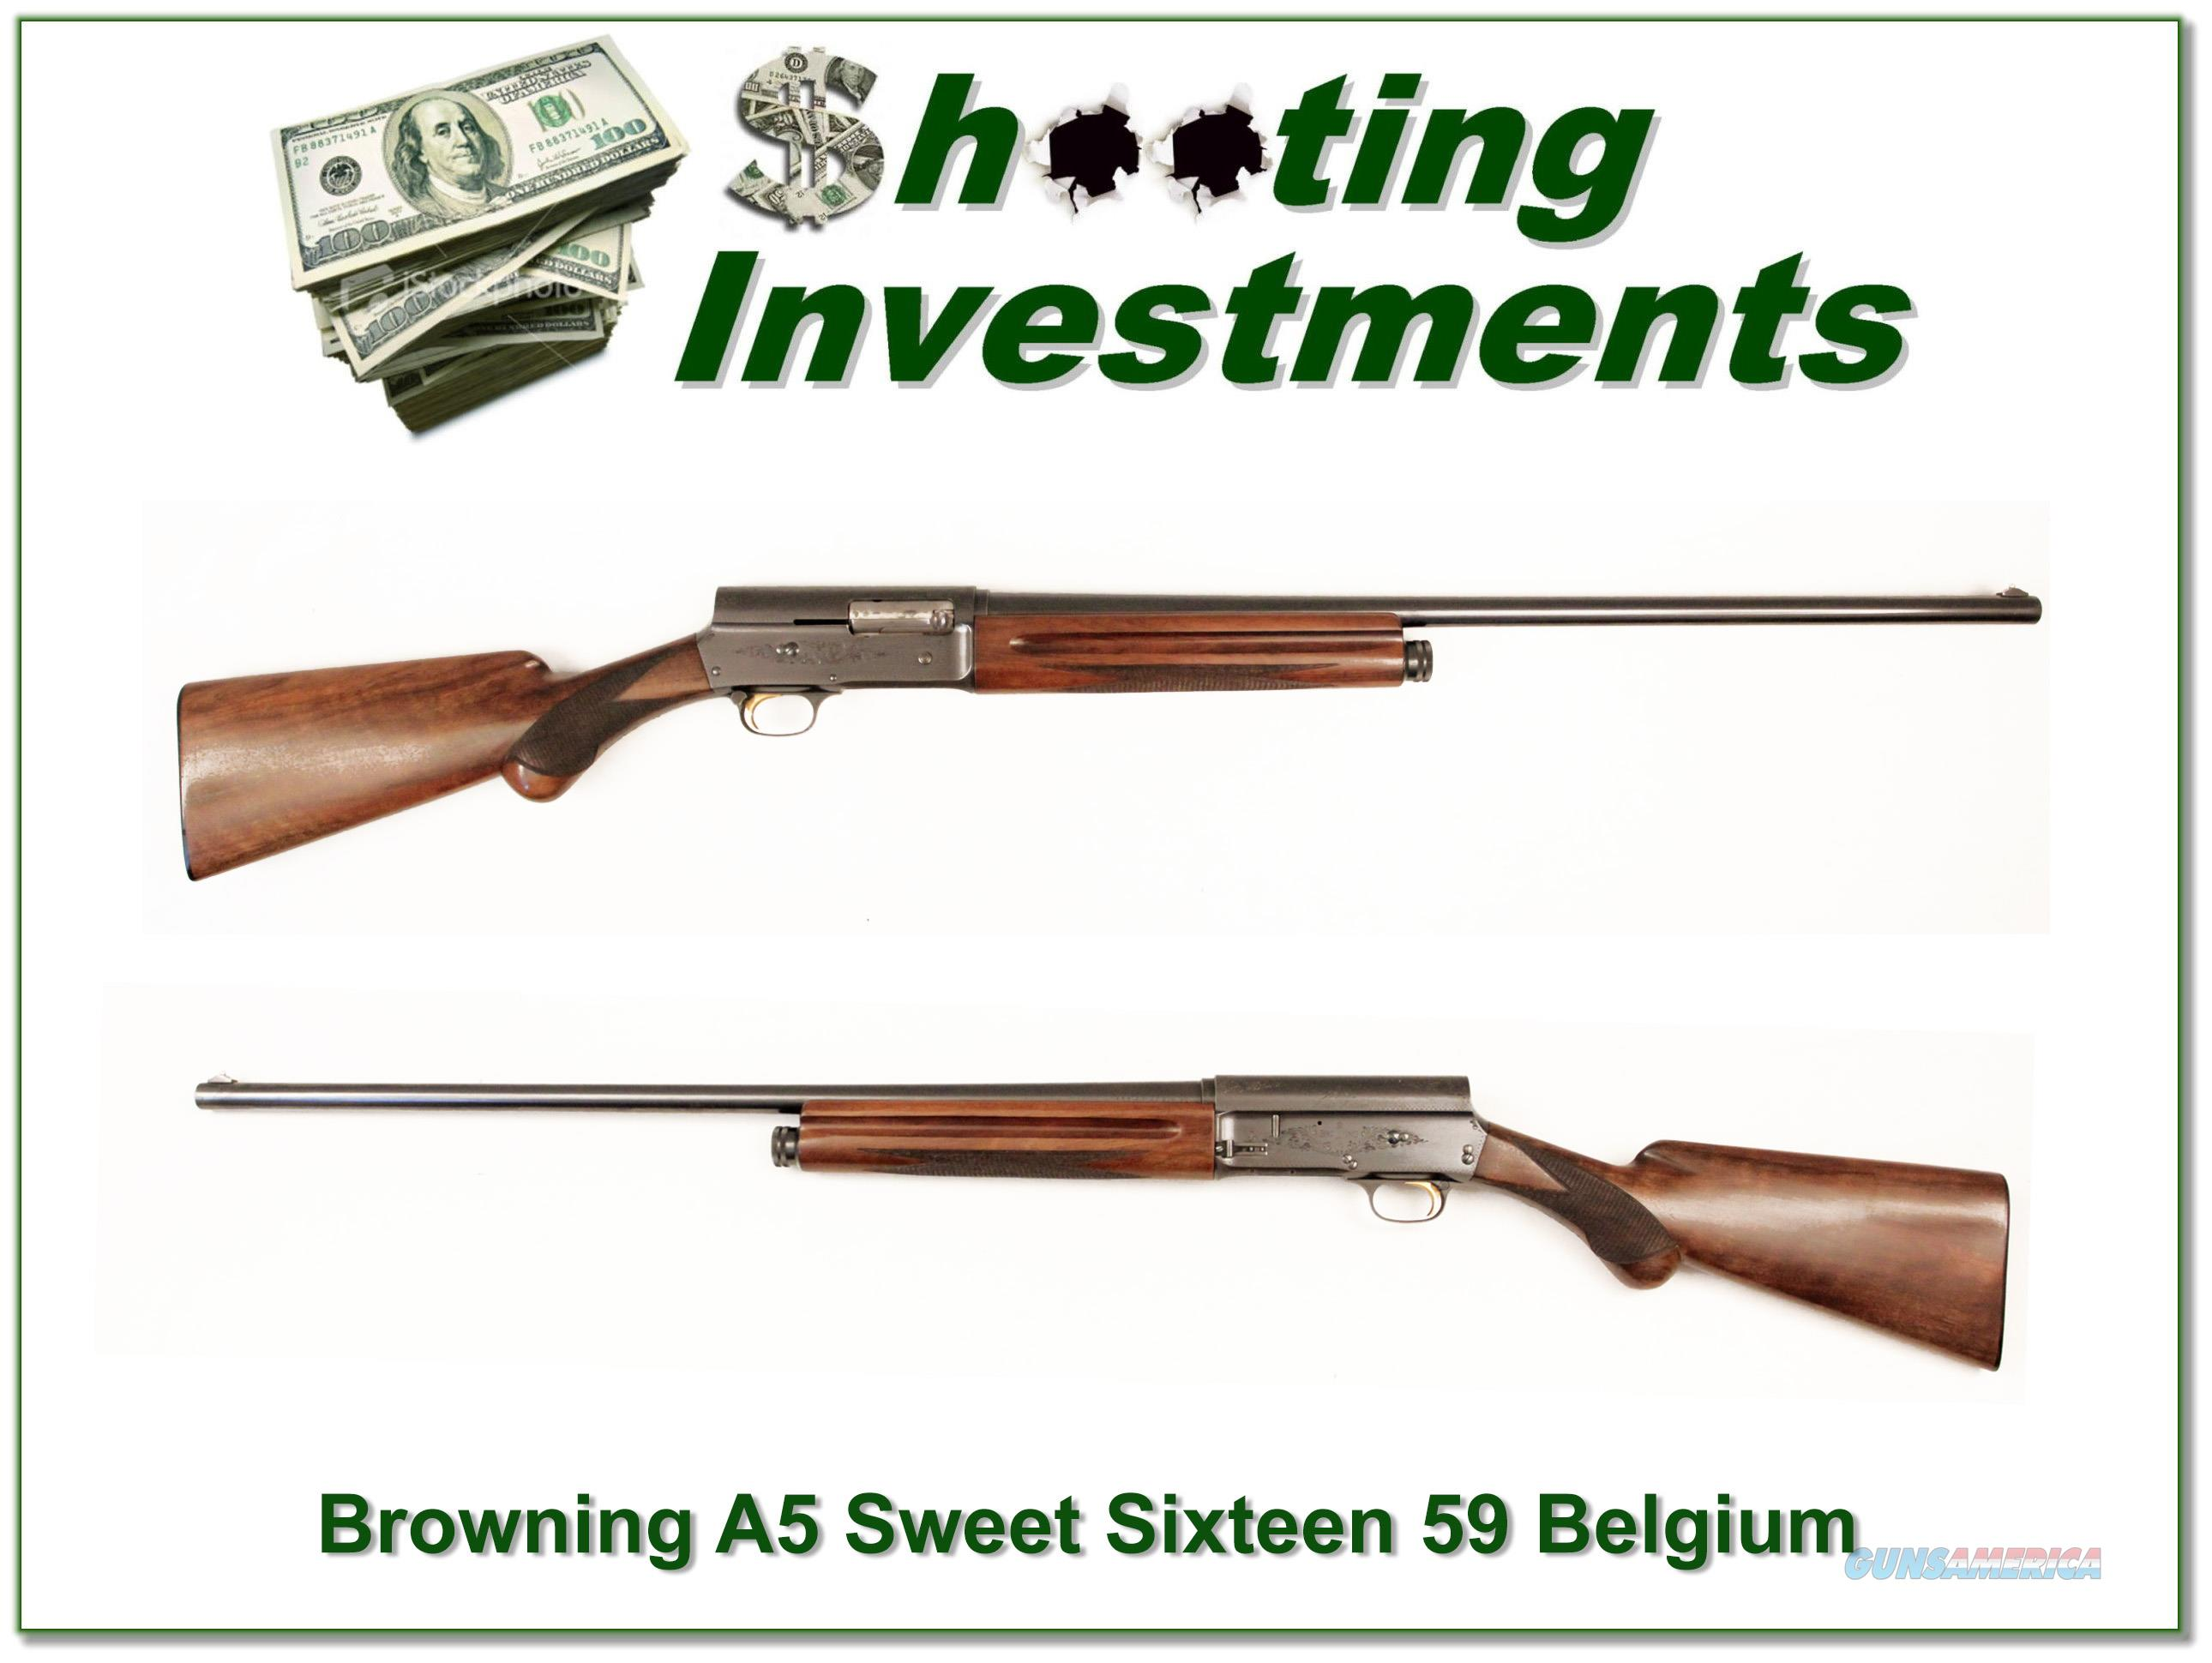 Browning A5 Sweet Sixteen 1959 Belgium!  Guns > Shotguns > Browning Shotguns > Autoloaders > Hunting